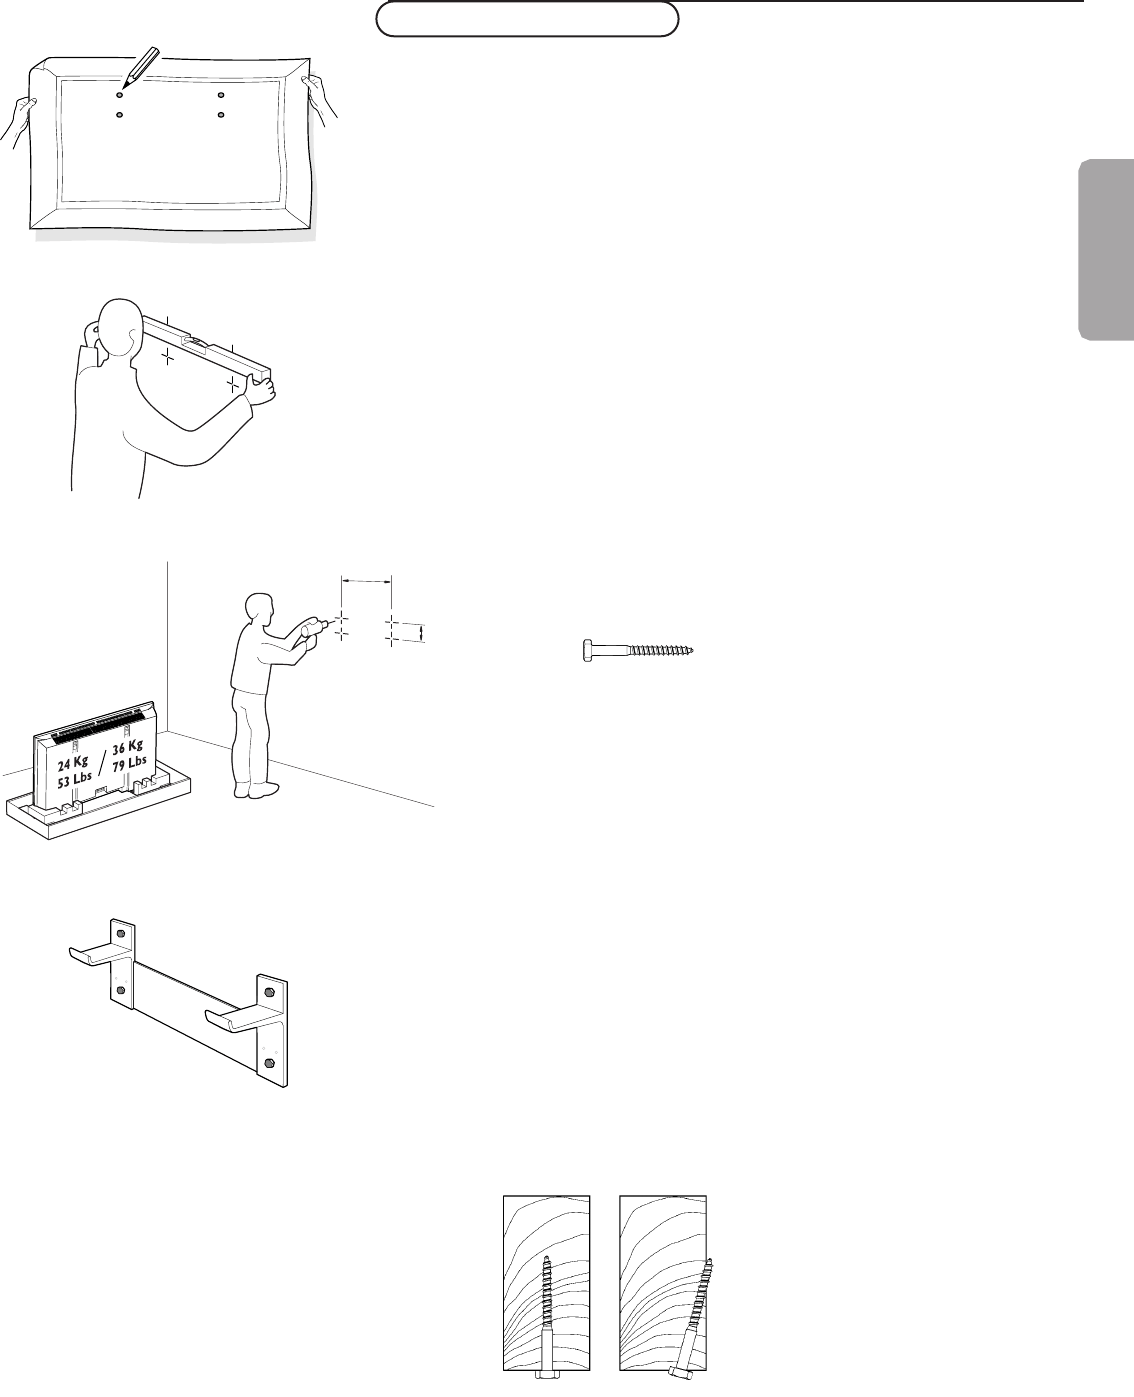 Philips Flat Panel Television 32FD 9954 User Guide